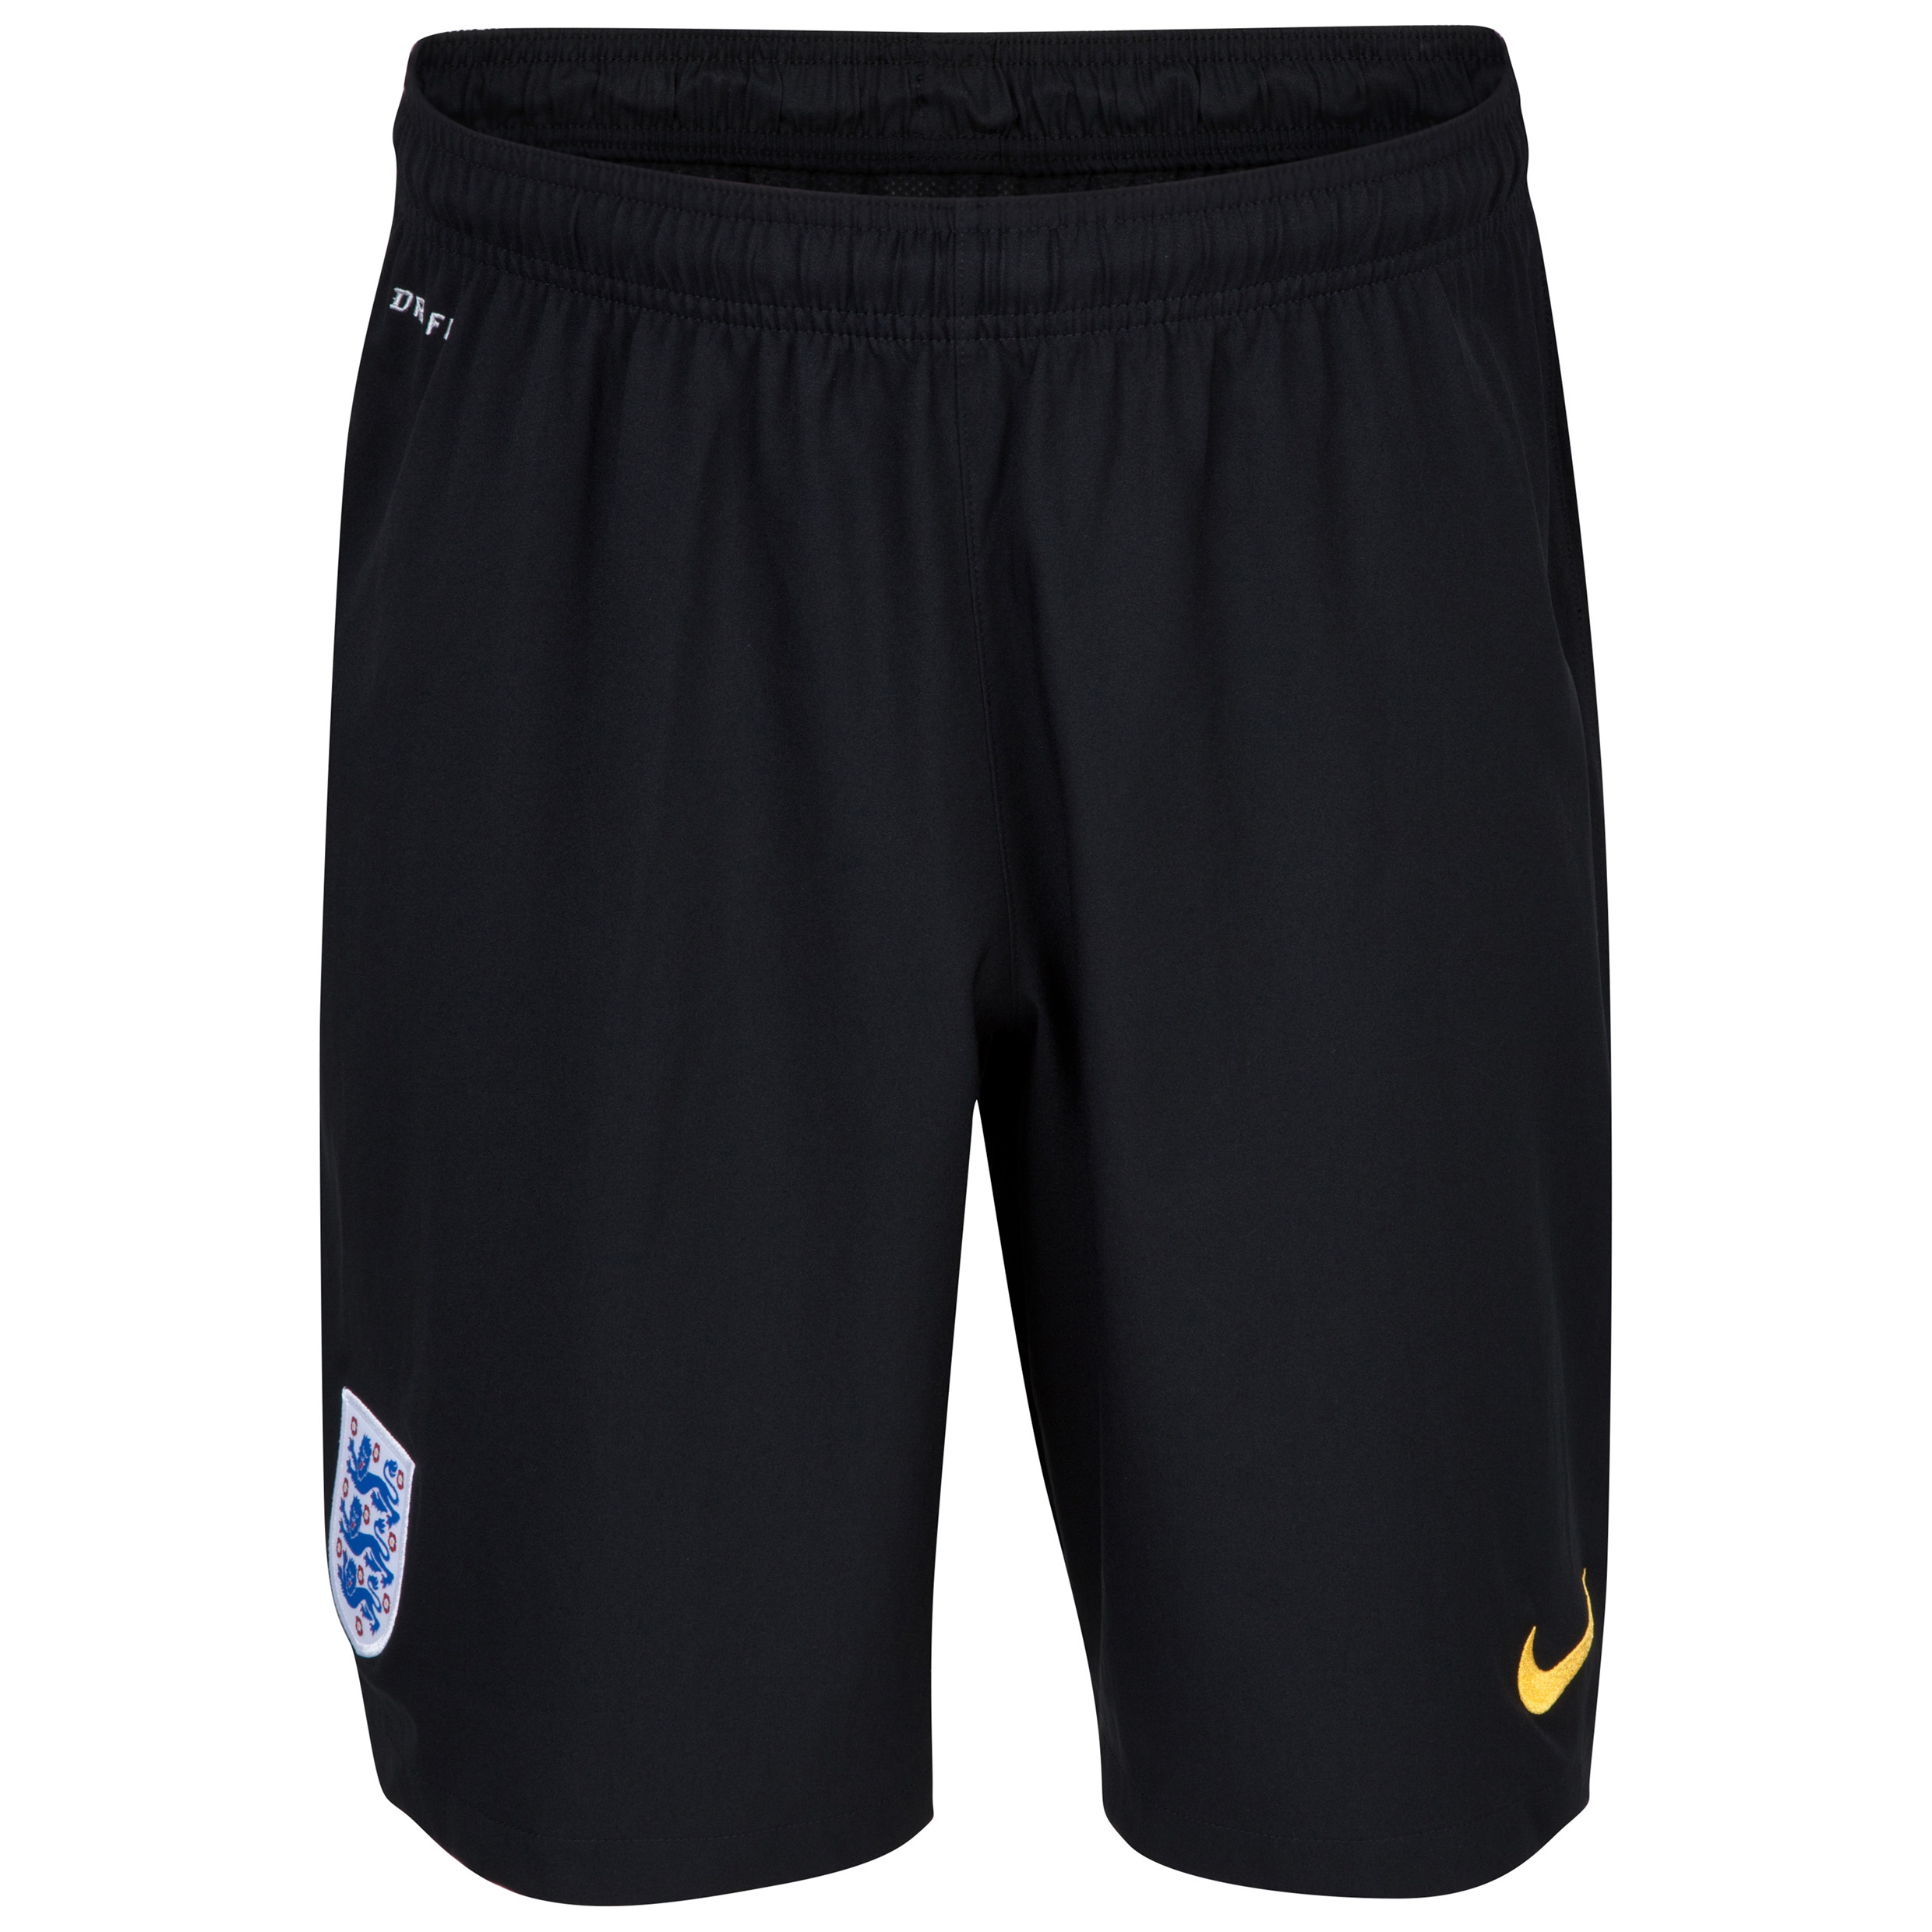 England Home Goalkeeper Short 2014/15 - Kids Black